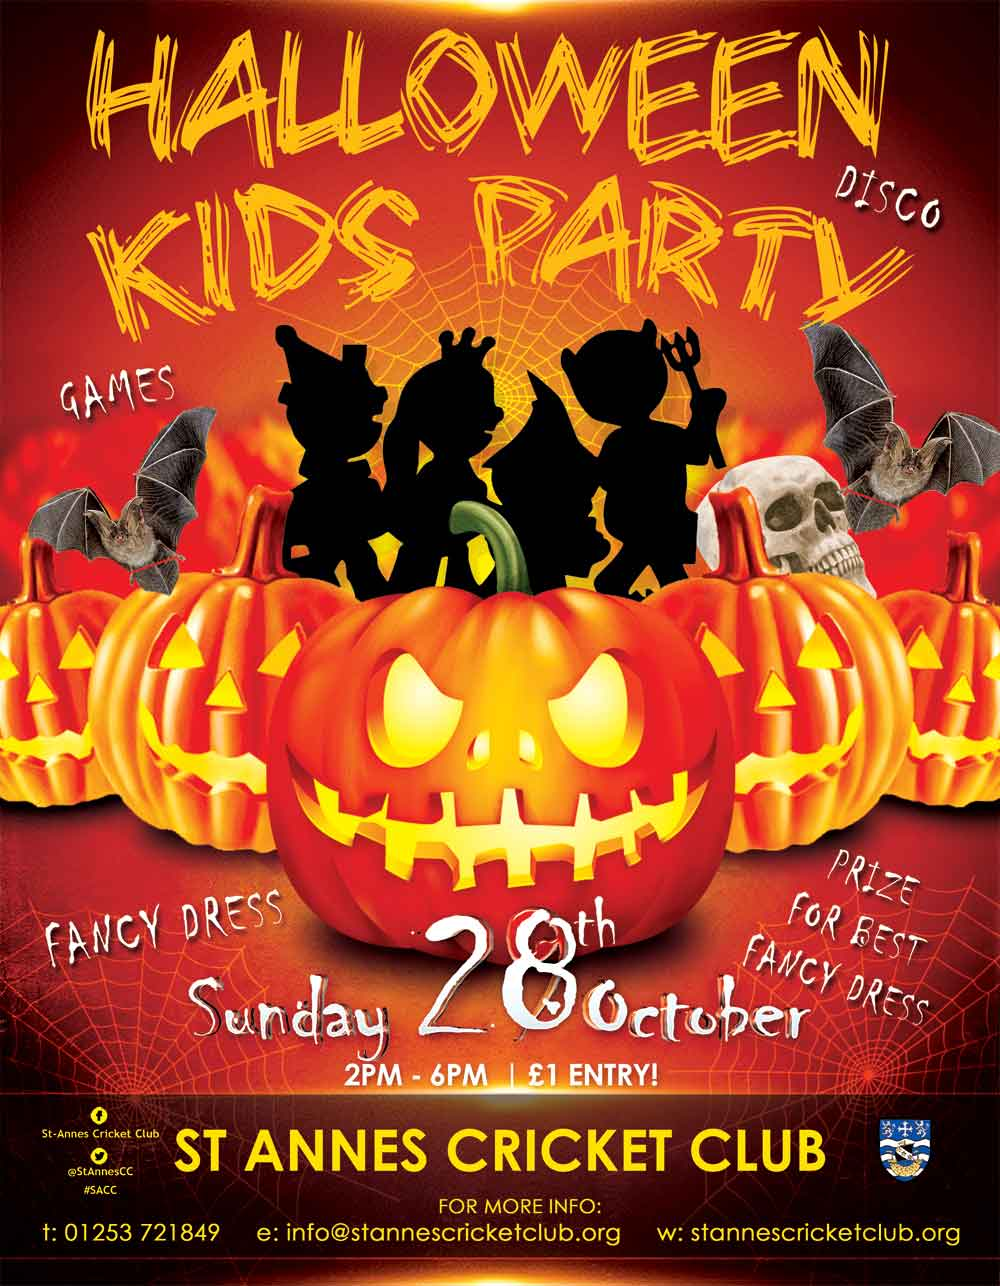 SPOOKY Halloween kids party & disco at St Annes CC